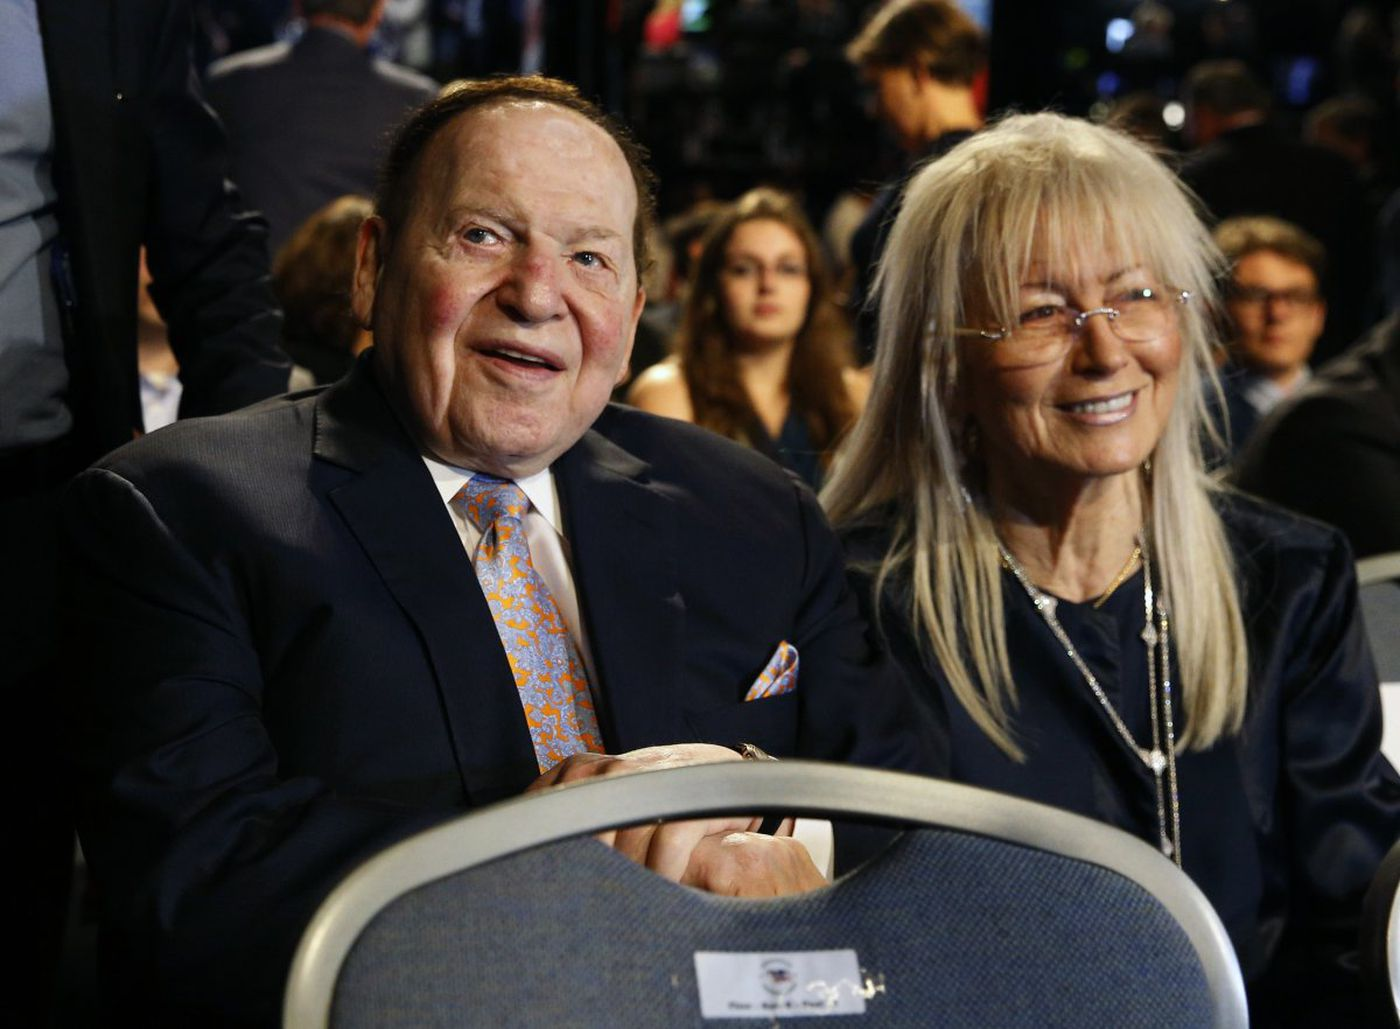 Sheldon Adelson sits with his wife Miriam.